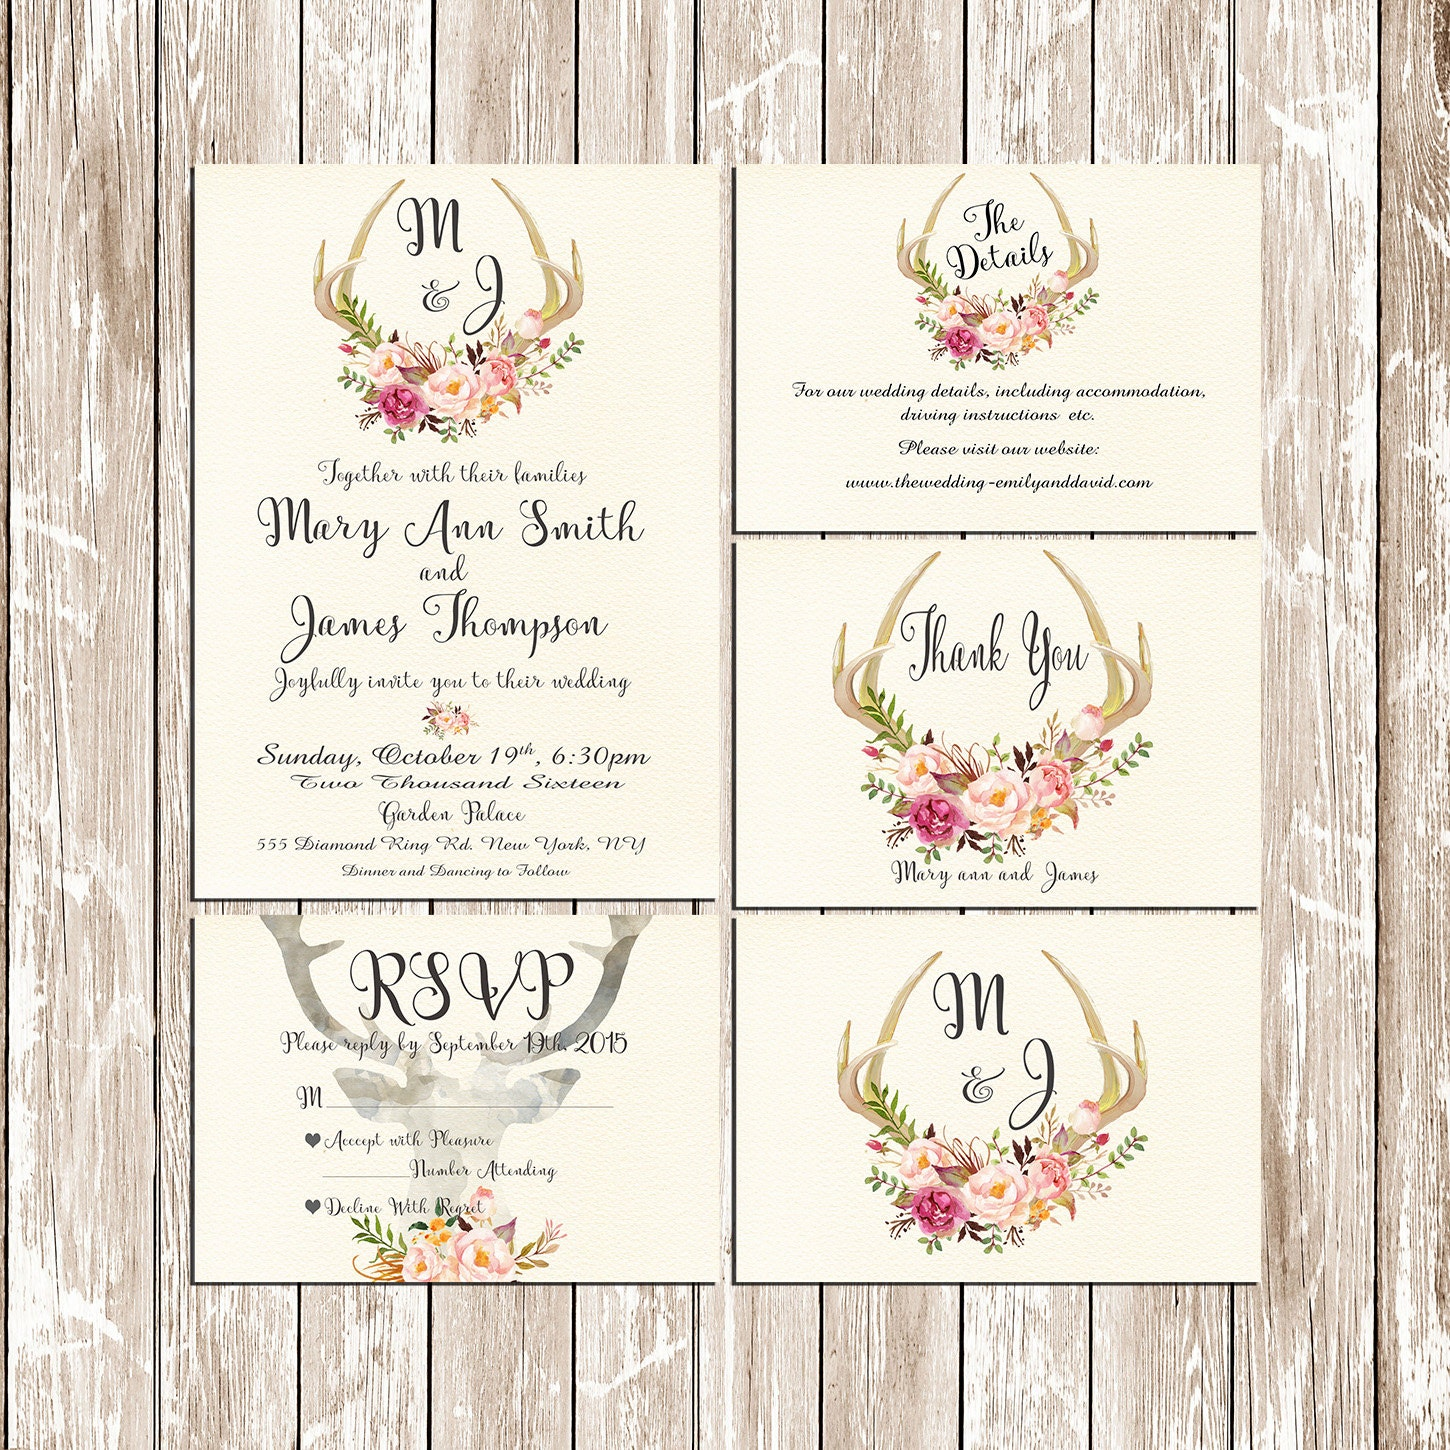 Rustic Sunflower Wedding Invitation Setsuite birthday invitation ...